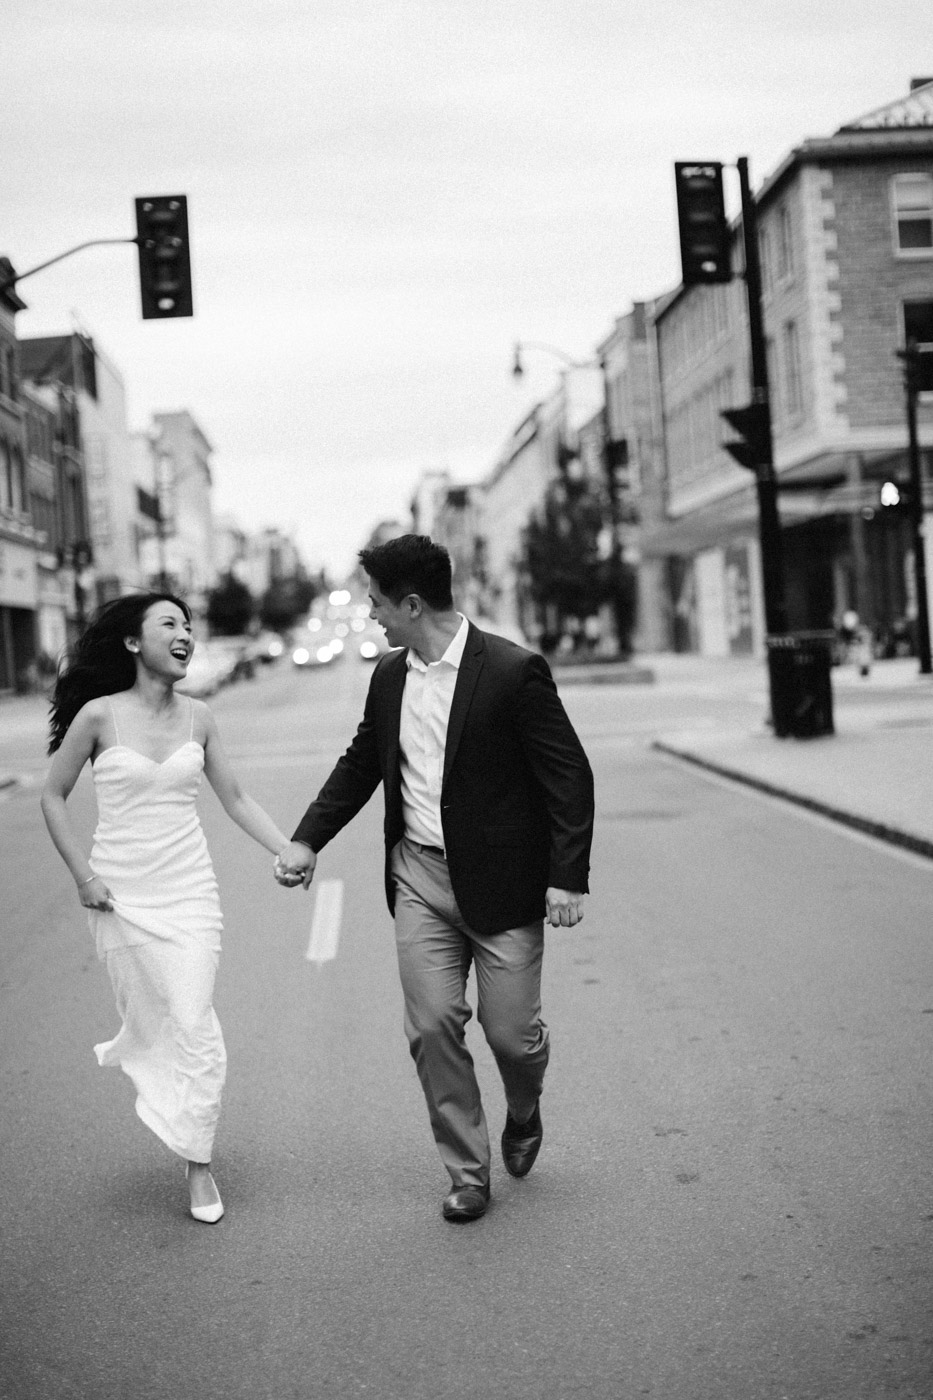 toronto_wedding_photographer_engagement_photography_tips-46.jpg